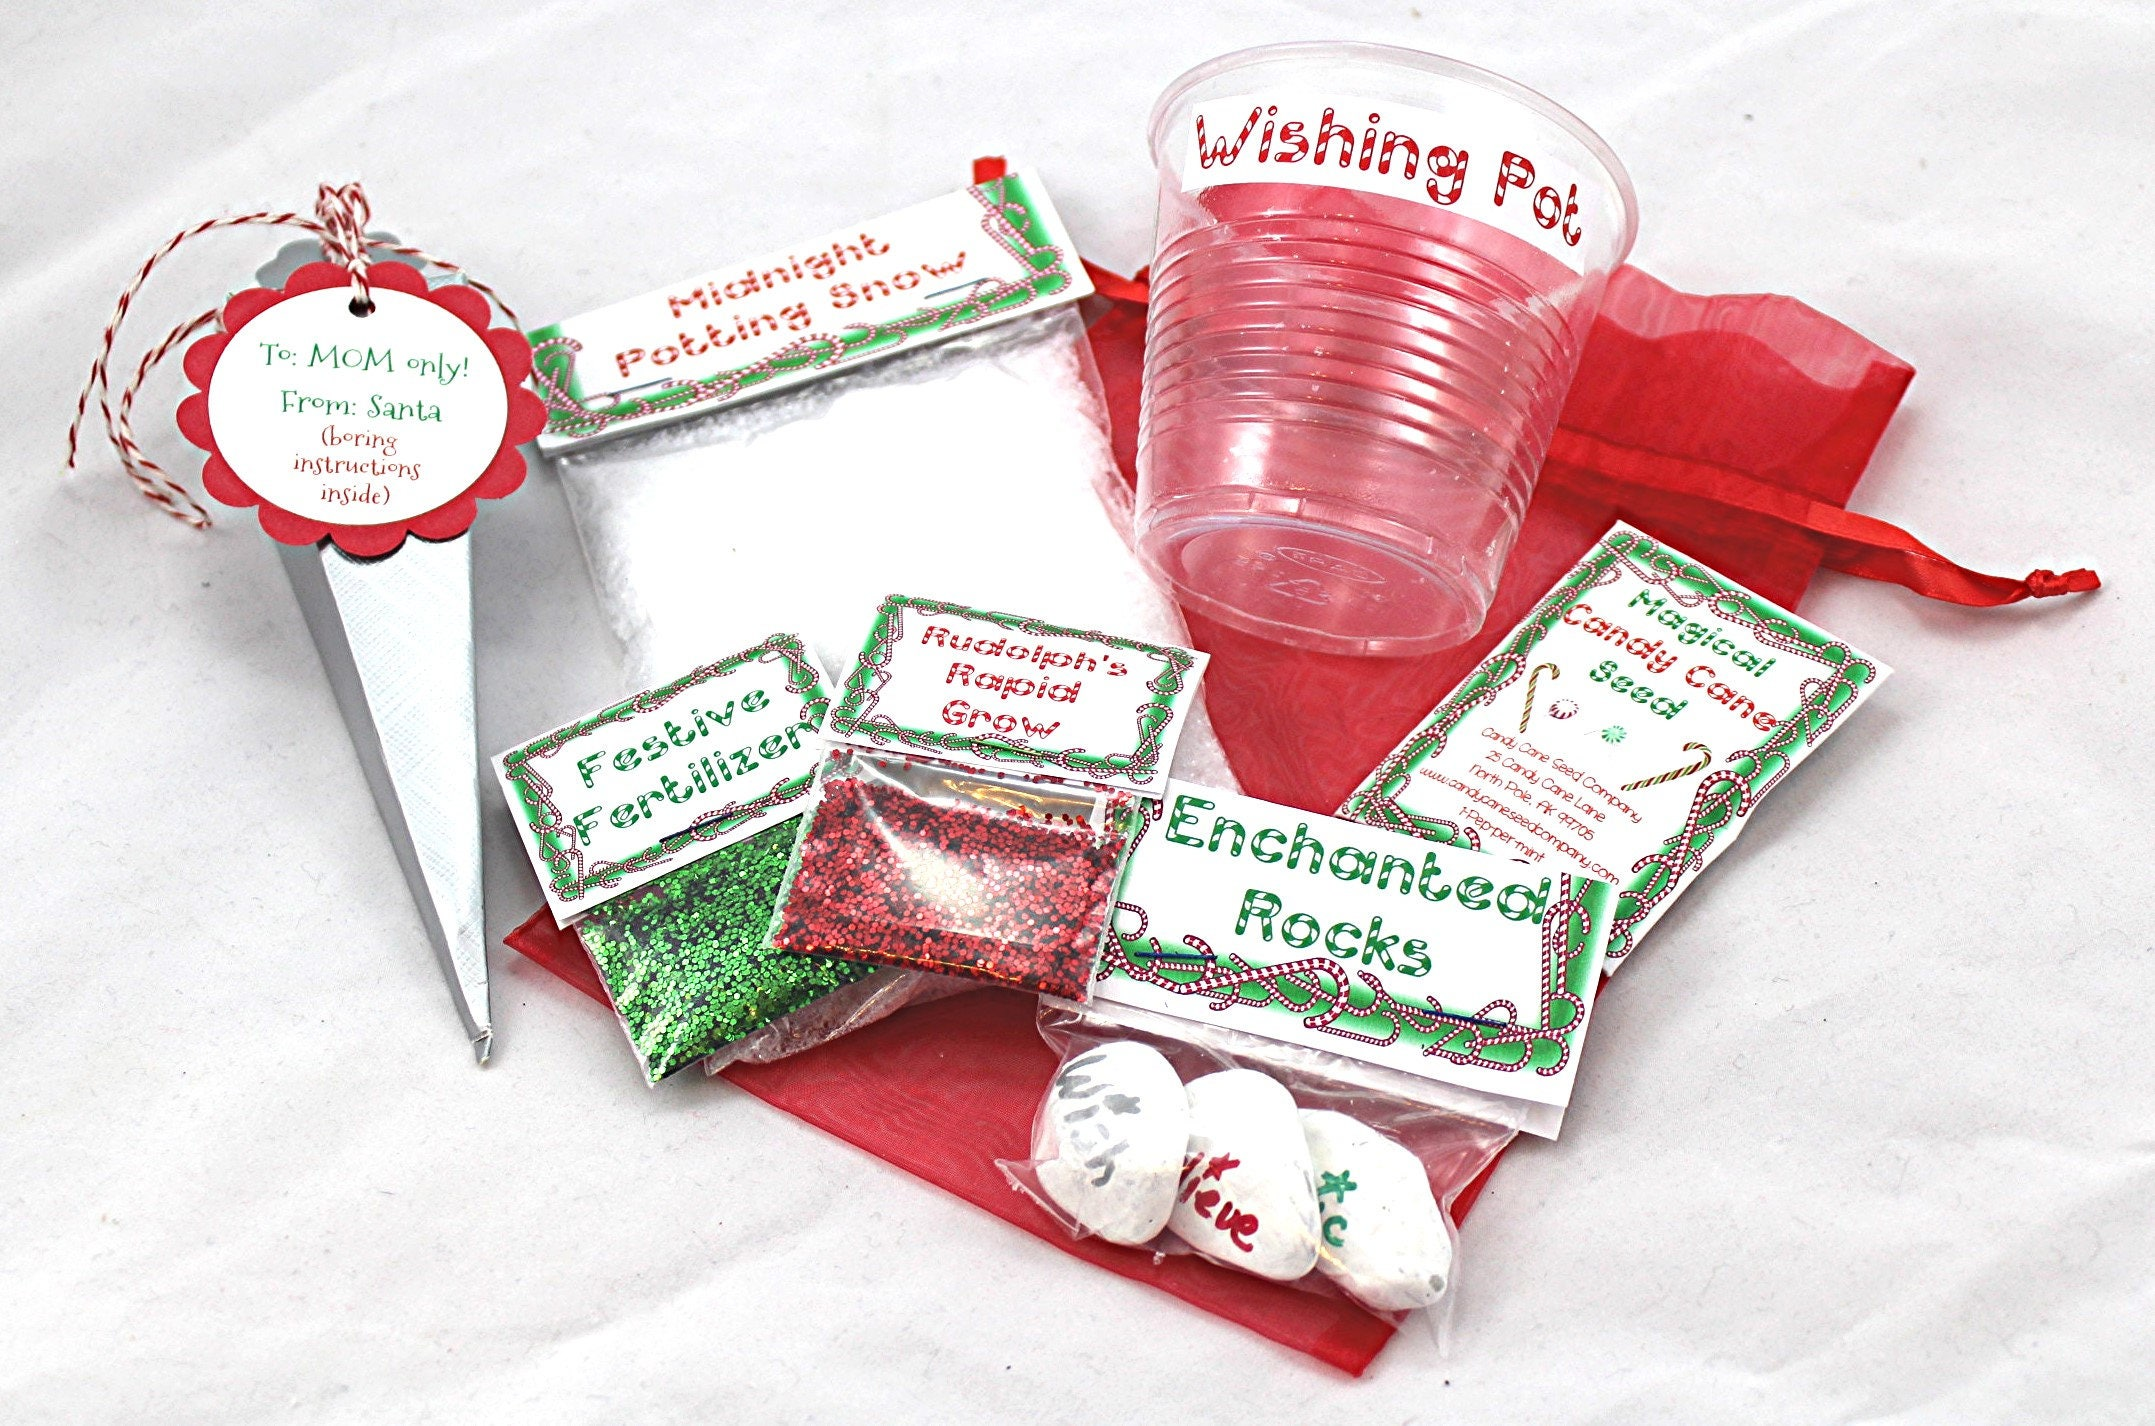 Christmas Garden Christmas Tradition Candy Cane Seed Kid